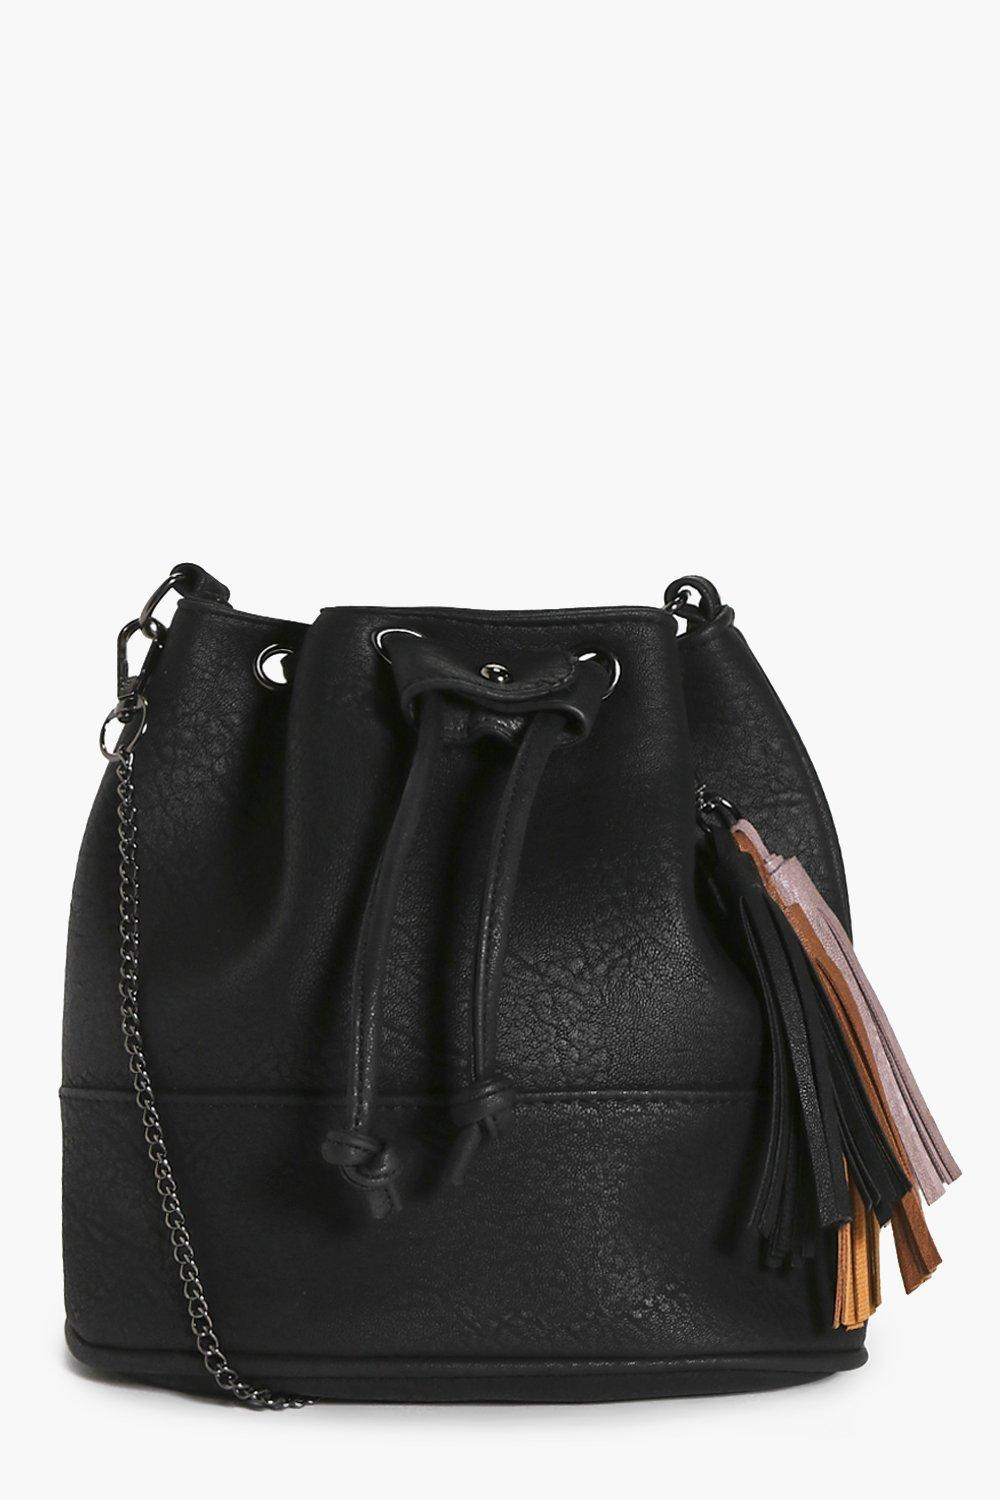 Lucy Tassel Duffle Cross Body Bag